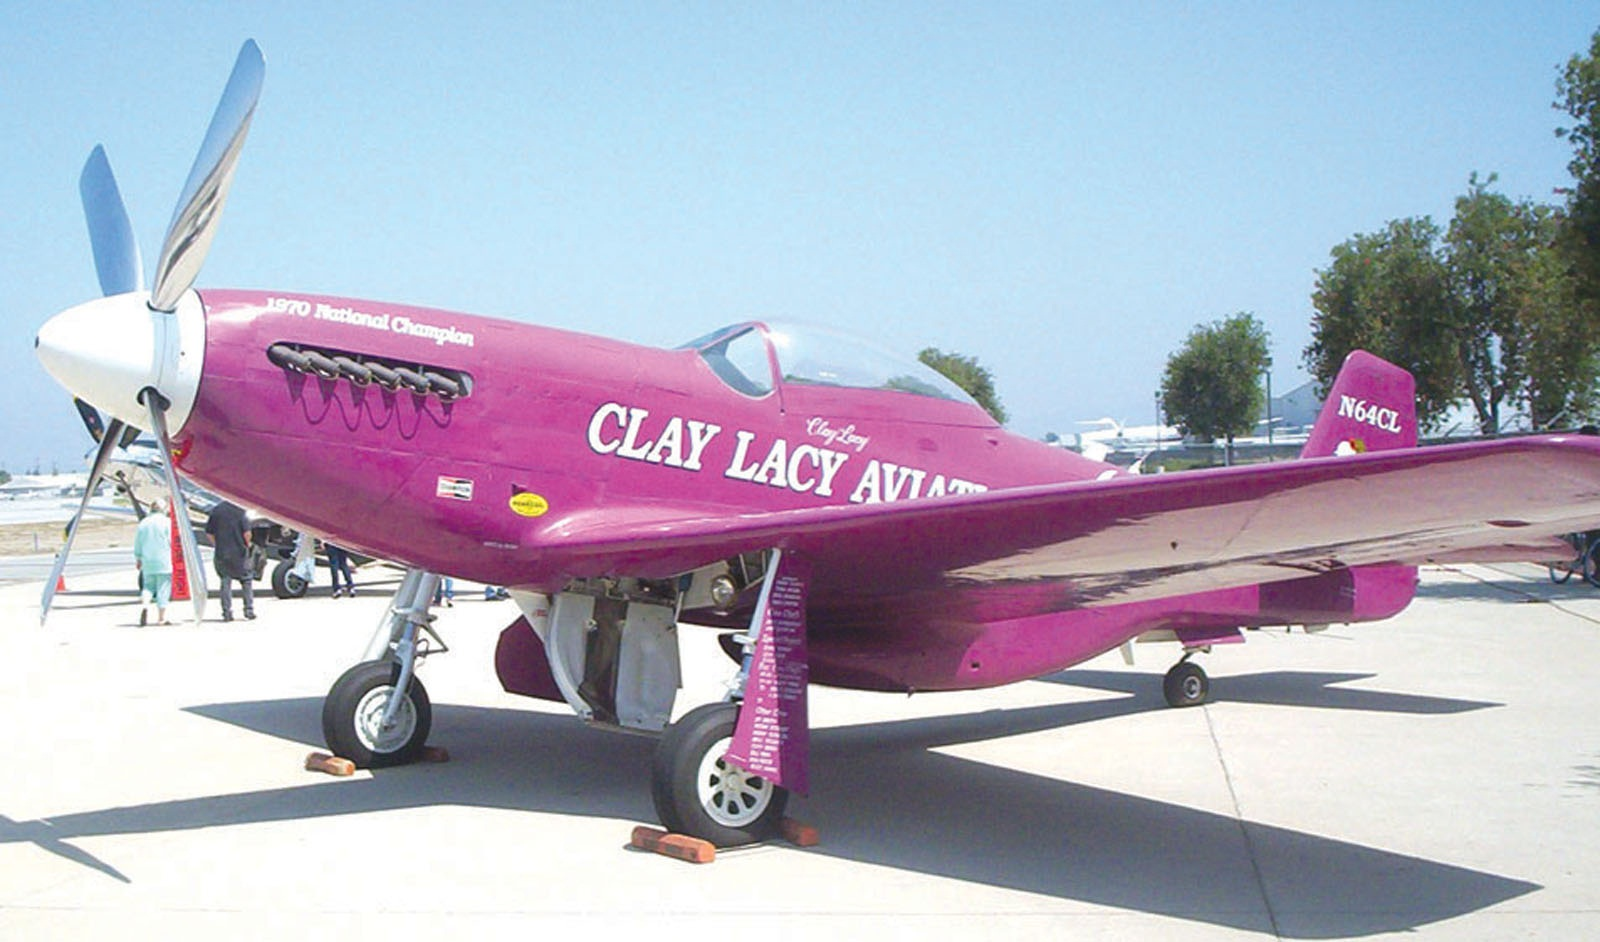 Clay Lacy's P-51 Mustang.